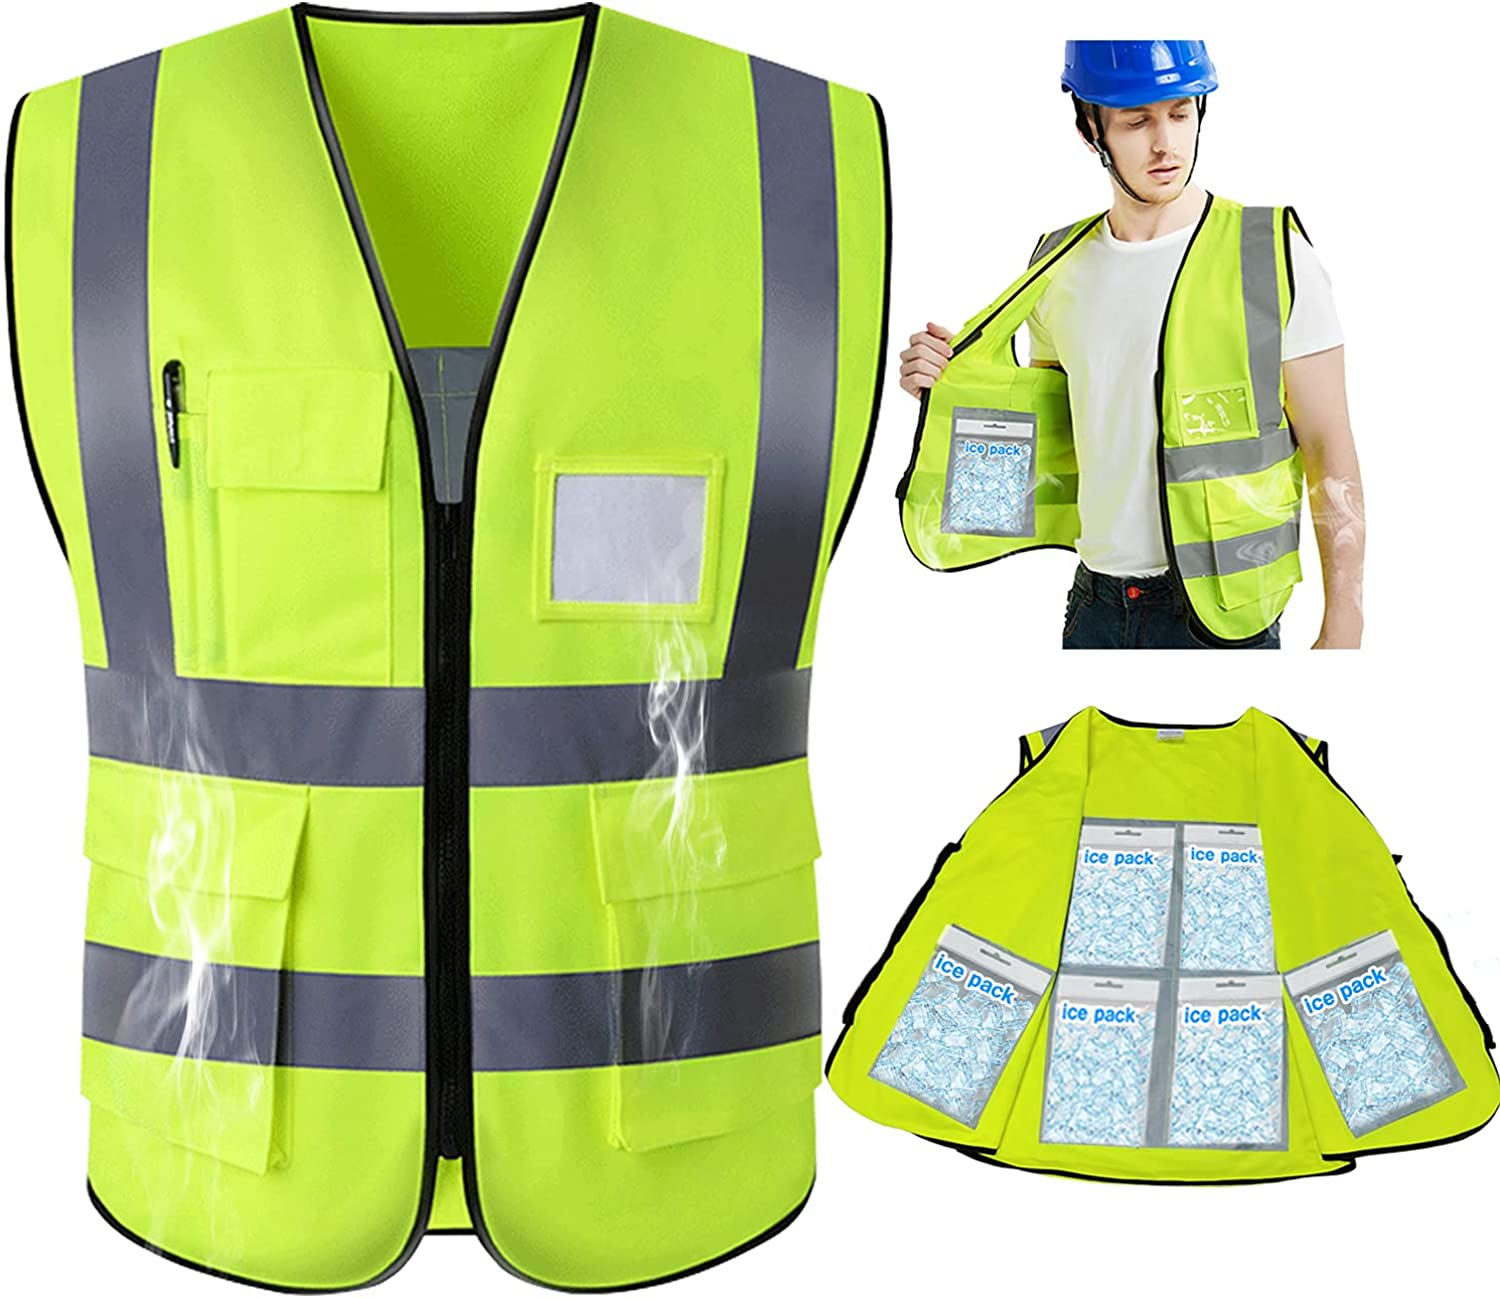 Safety famous Vest Reflective High Visibility Constructi Work New Orleans Mall